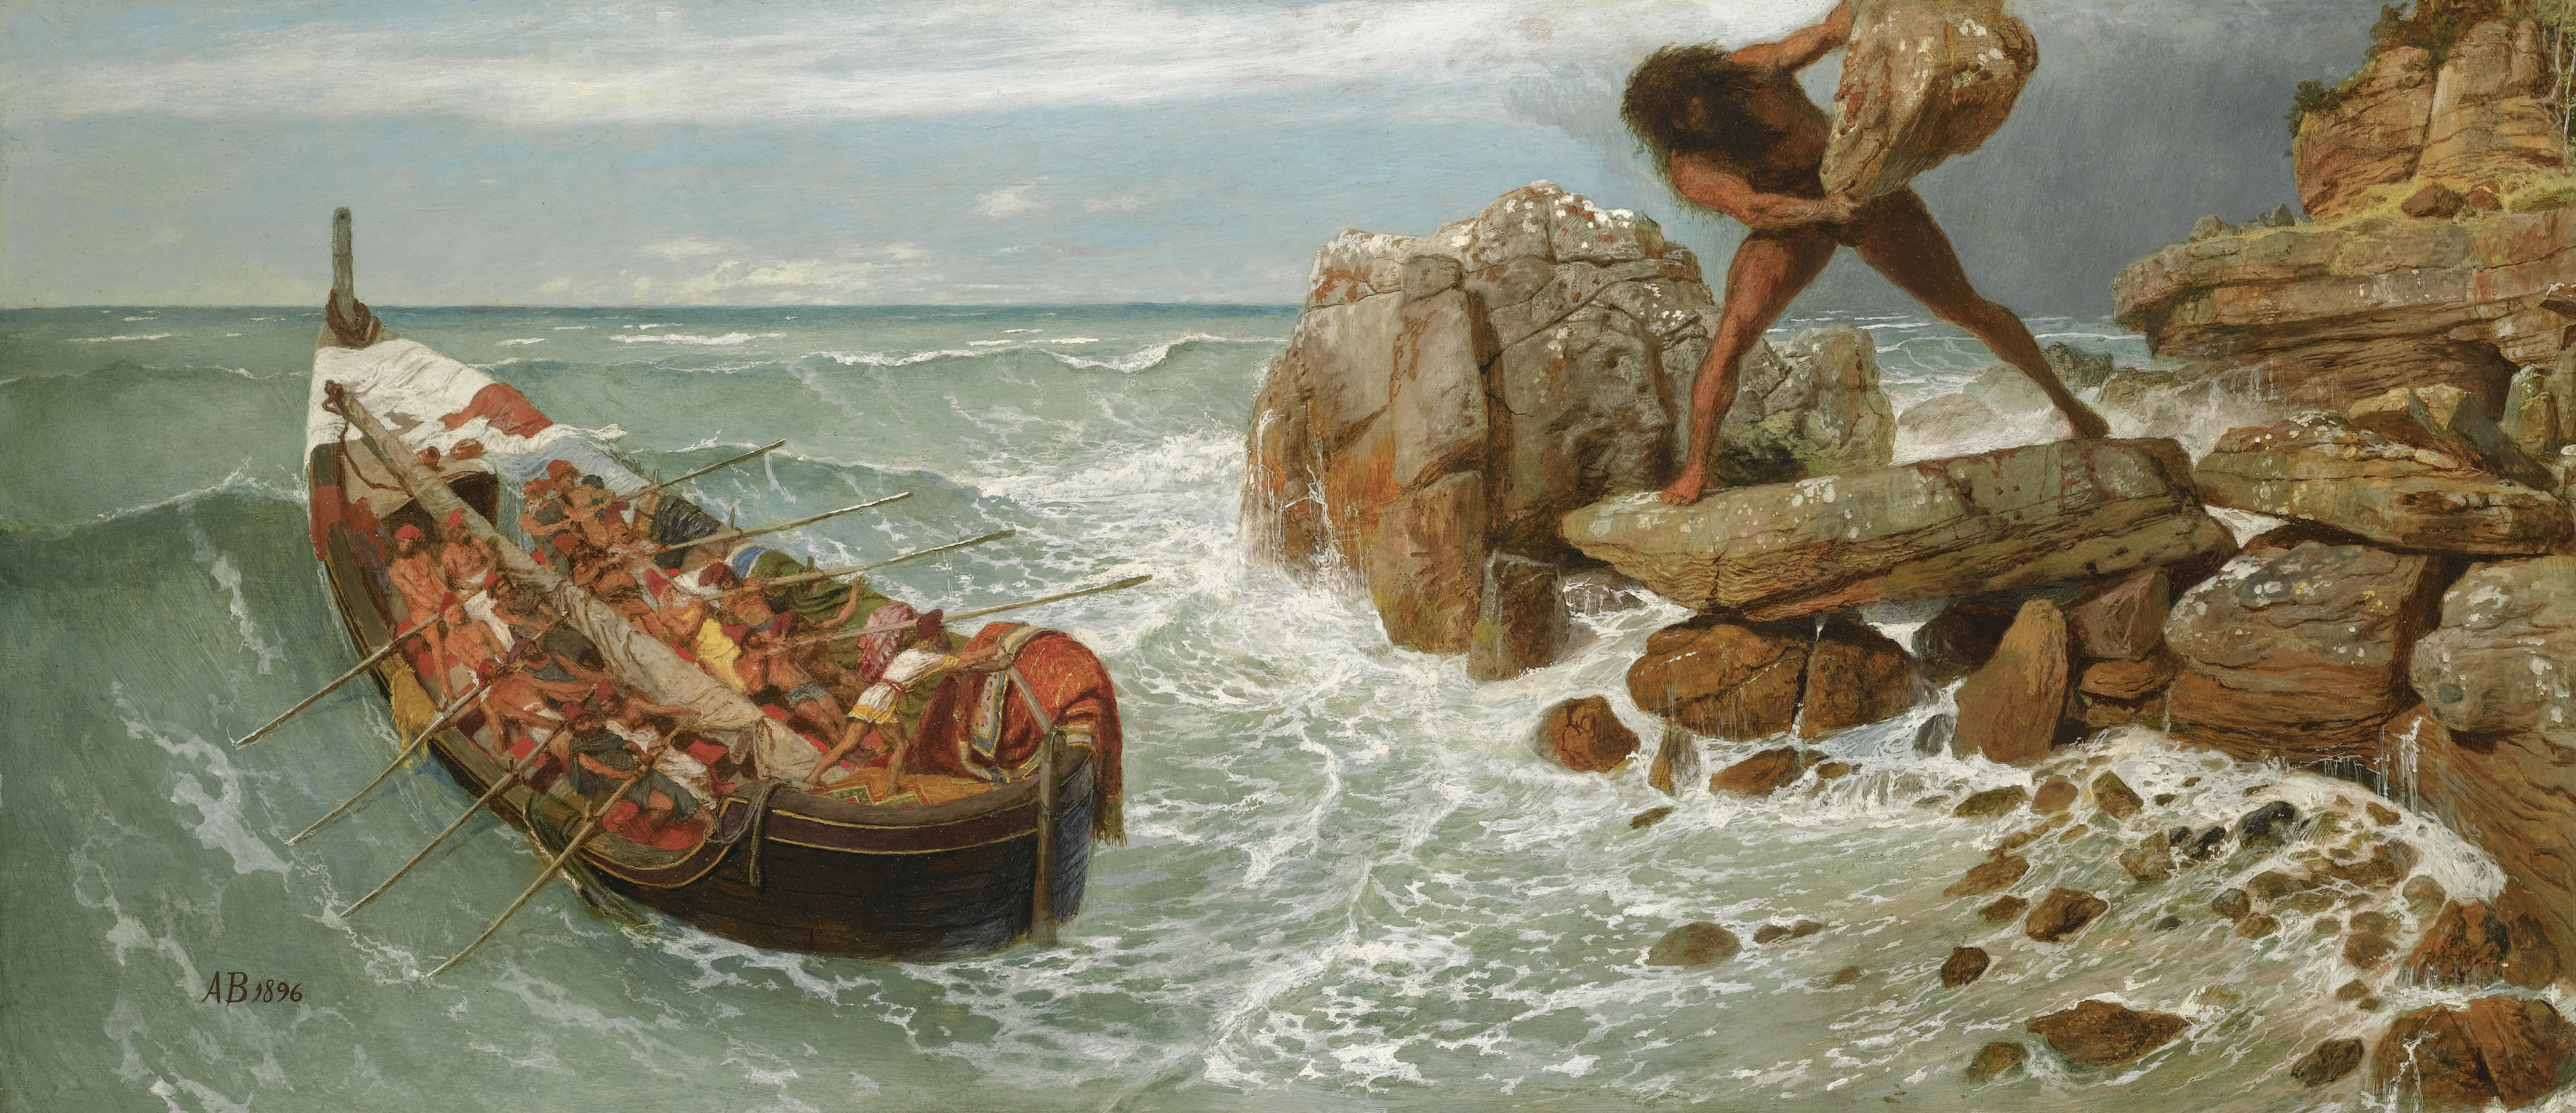 The story of homers odyssey during the bronze age